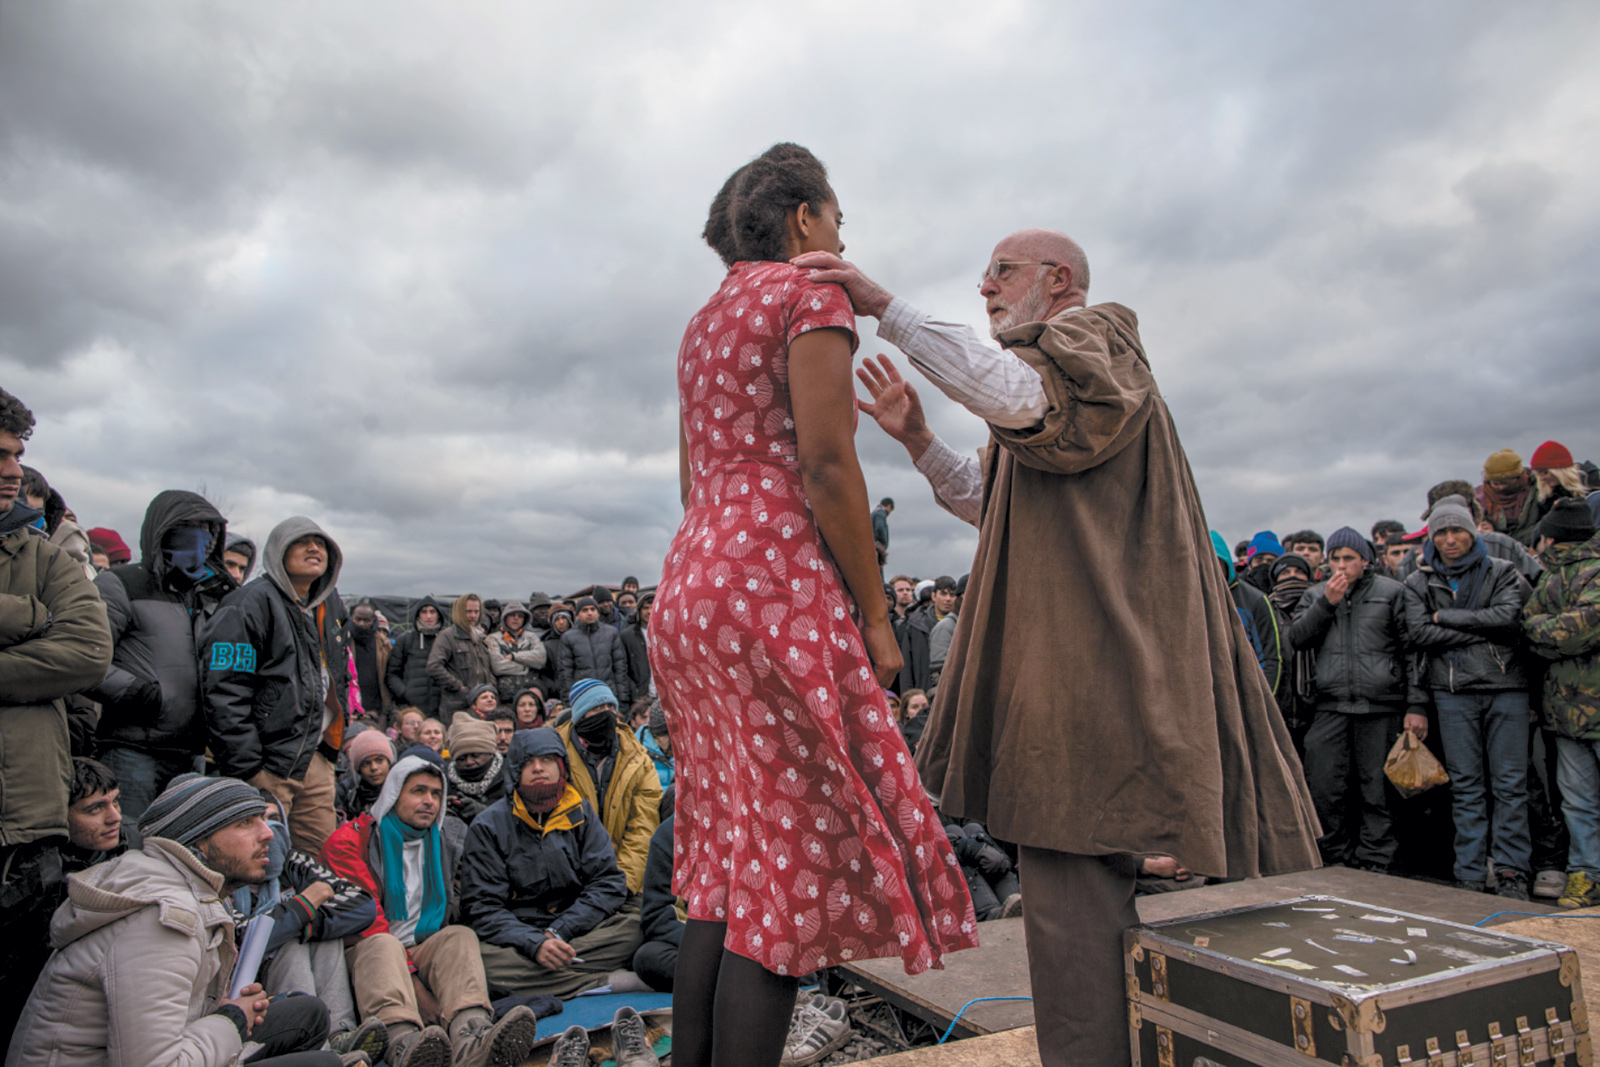 Actors from the Globe Theatre performing Hamlet for refugees and migrants in the Jungle refugee camp, Calais, France, February 2016